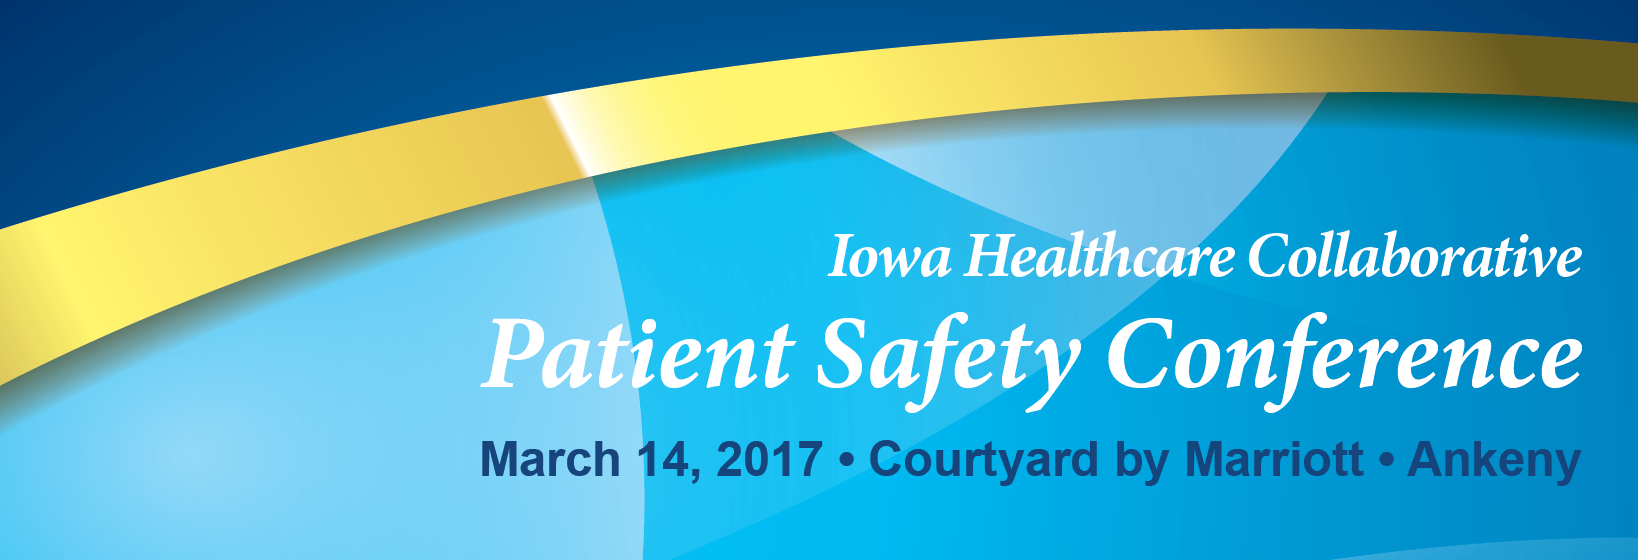 The logo for Iowa Healthcare Collaborative's Patient Safety Conference on March 14, 2017 at the Courtyard by Marriott in Ankeny, Iowa. The logo has a dark and light shade of blue with a golden stripe separating the two shades of blue.